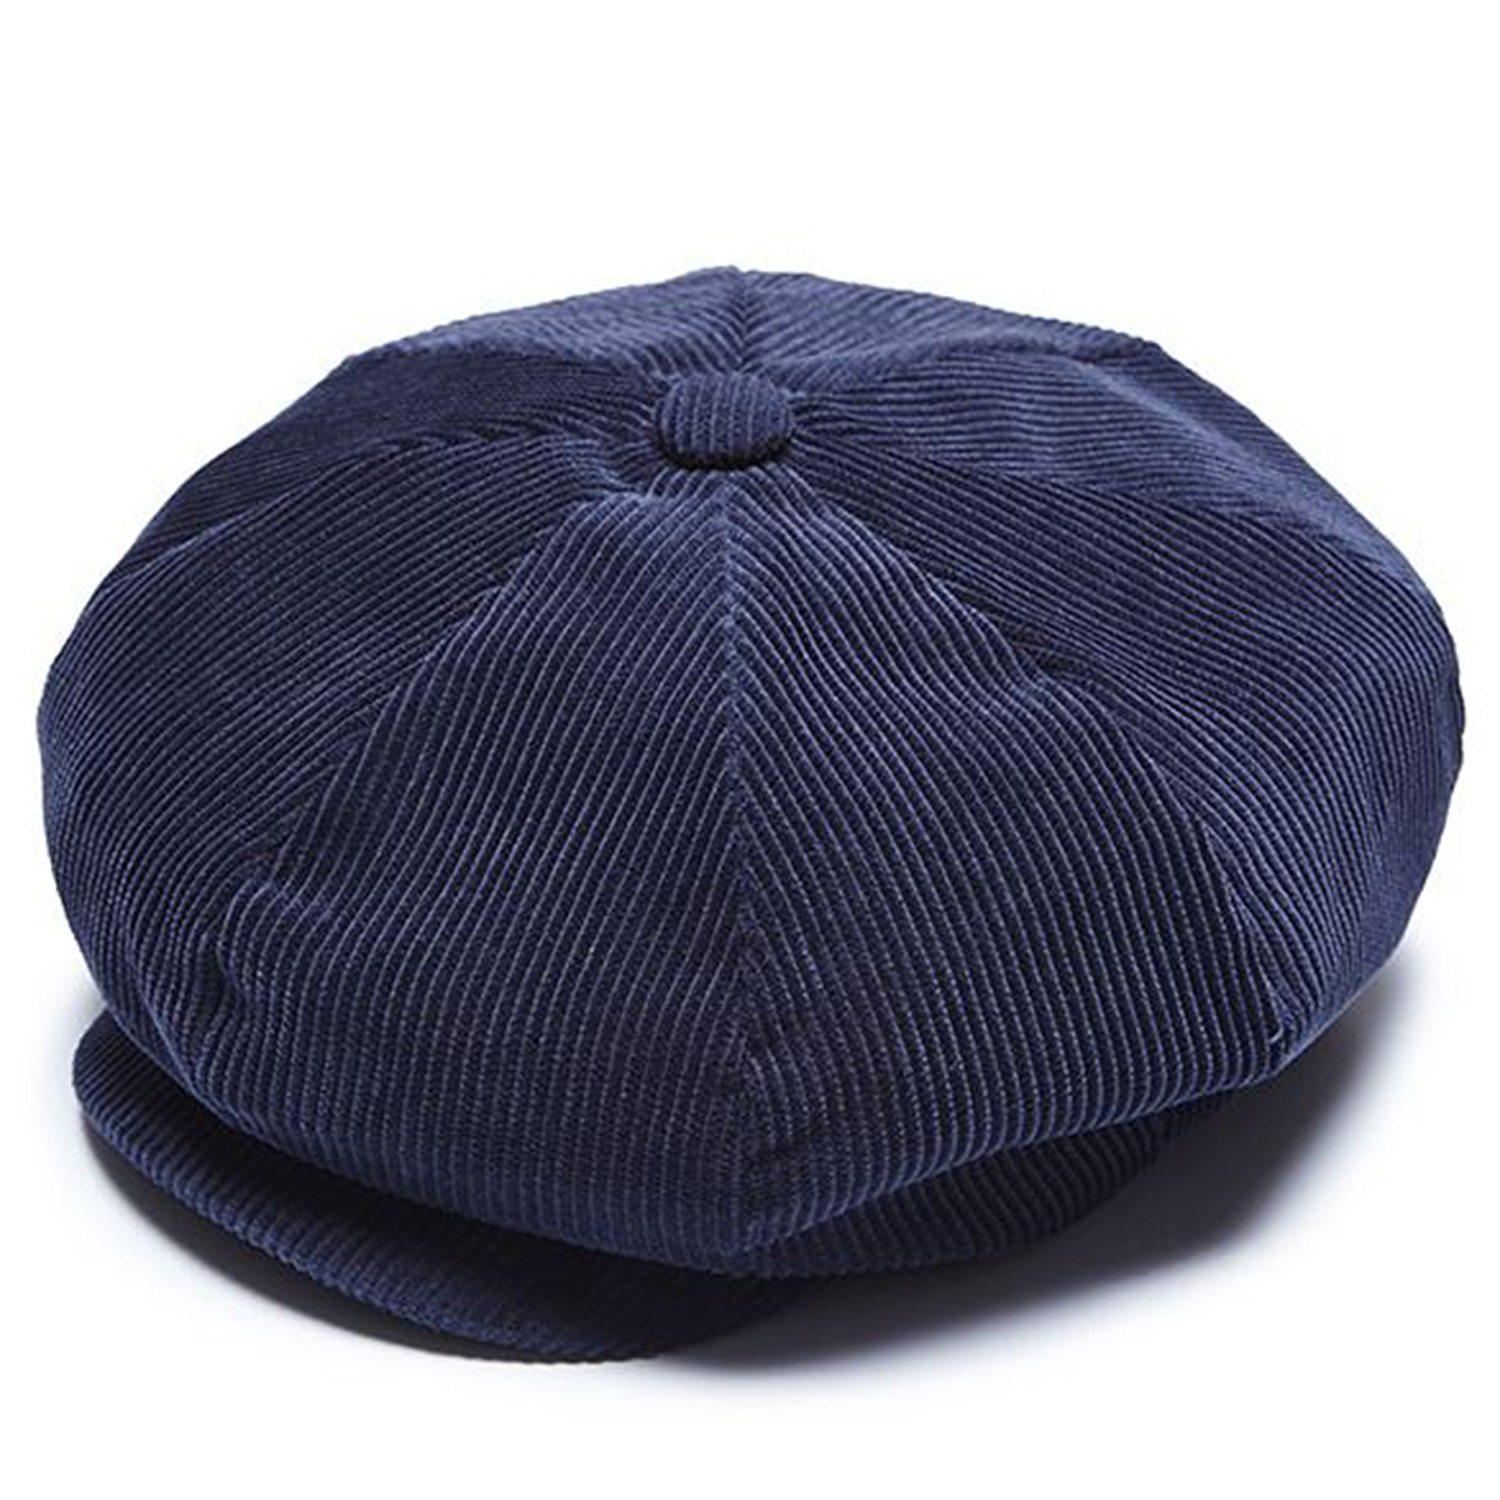 Millionairehats - needle cord big apple hat - navy